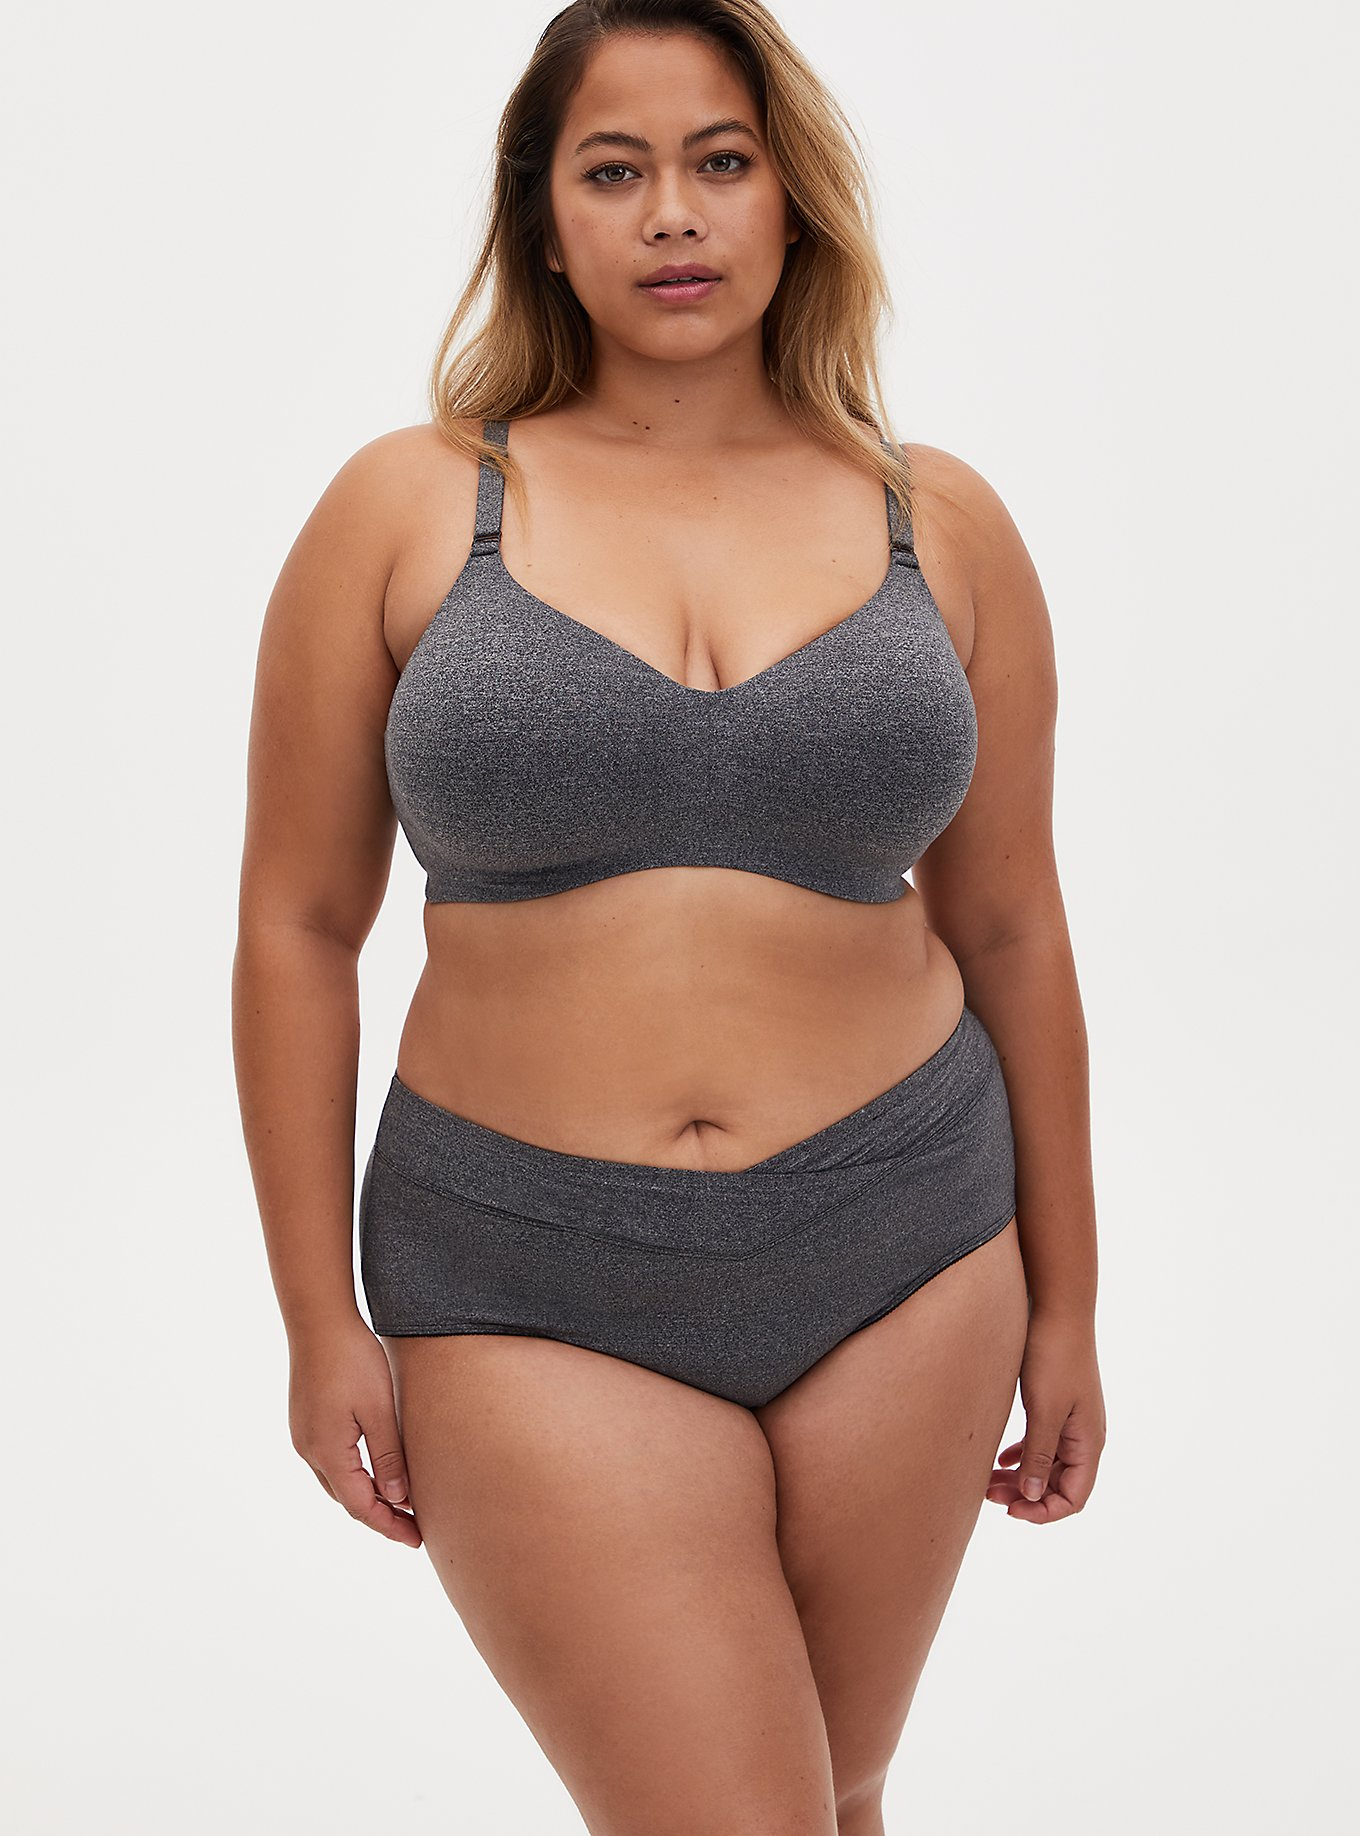 Heather Grey 360 BackSmoothing™ Lightly LinedEveryday Wire-Free Bra and Cheeky Panty, , hi-res